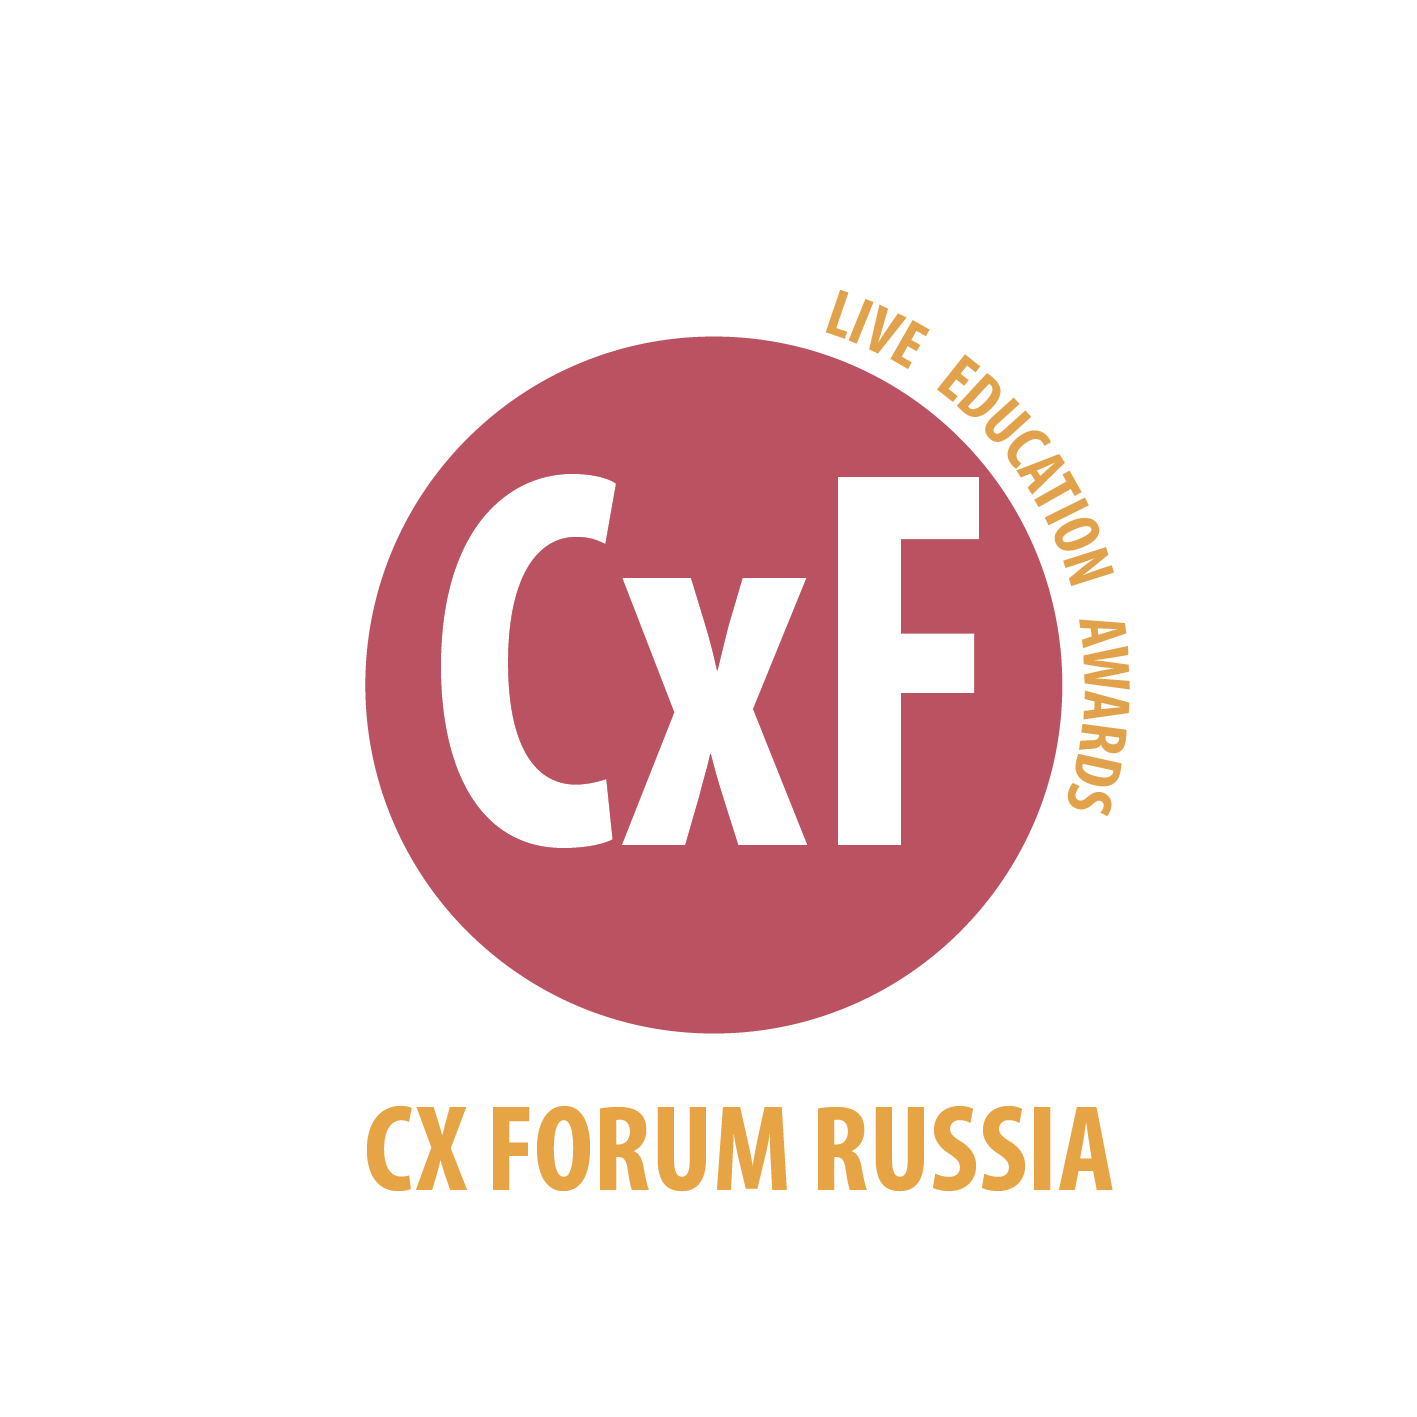 CX FORUM RUSSIA